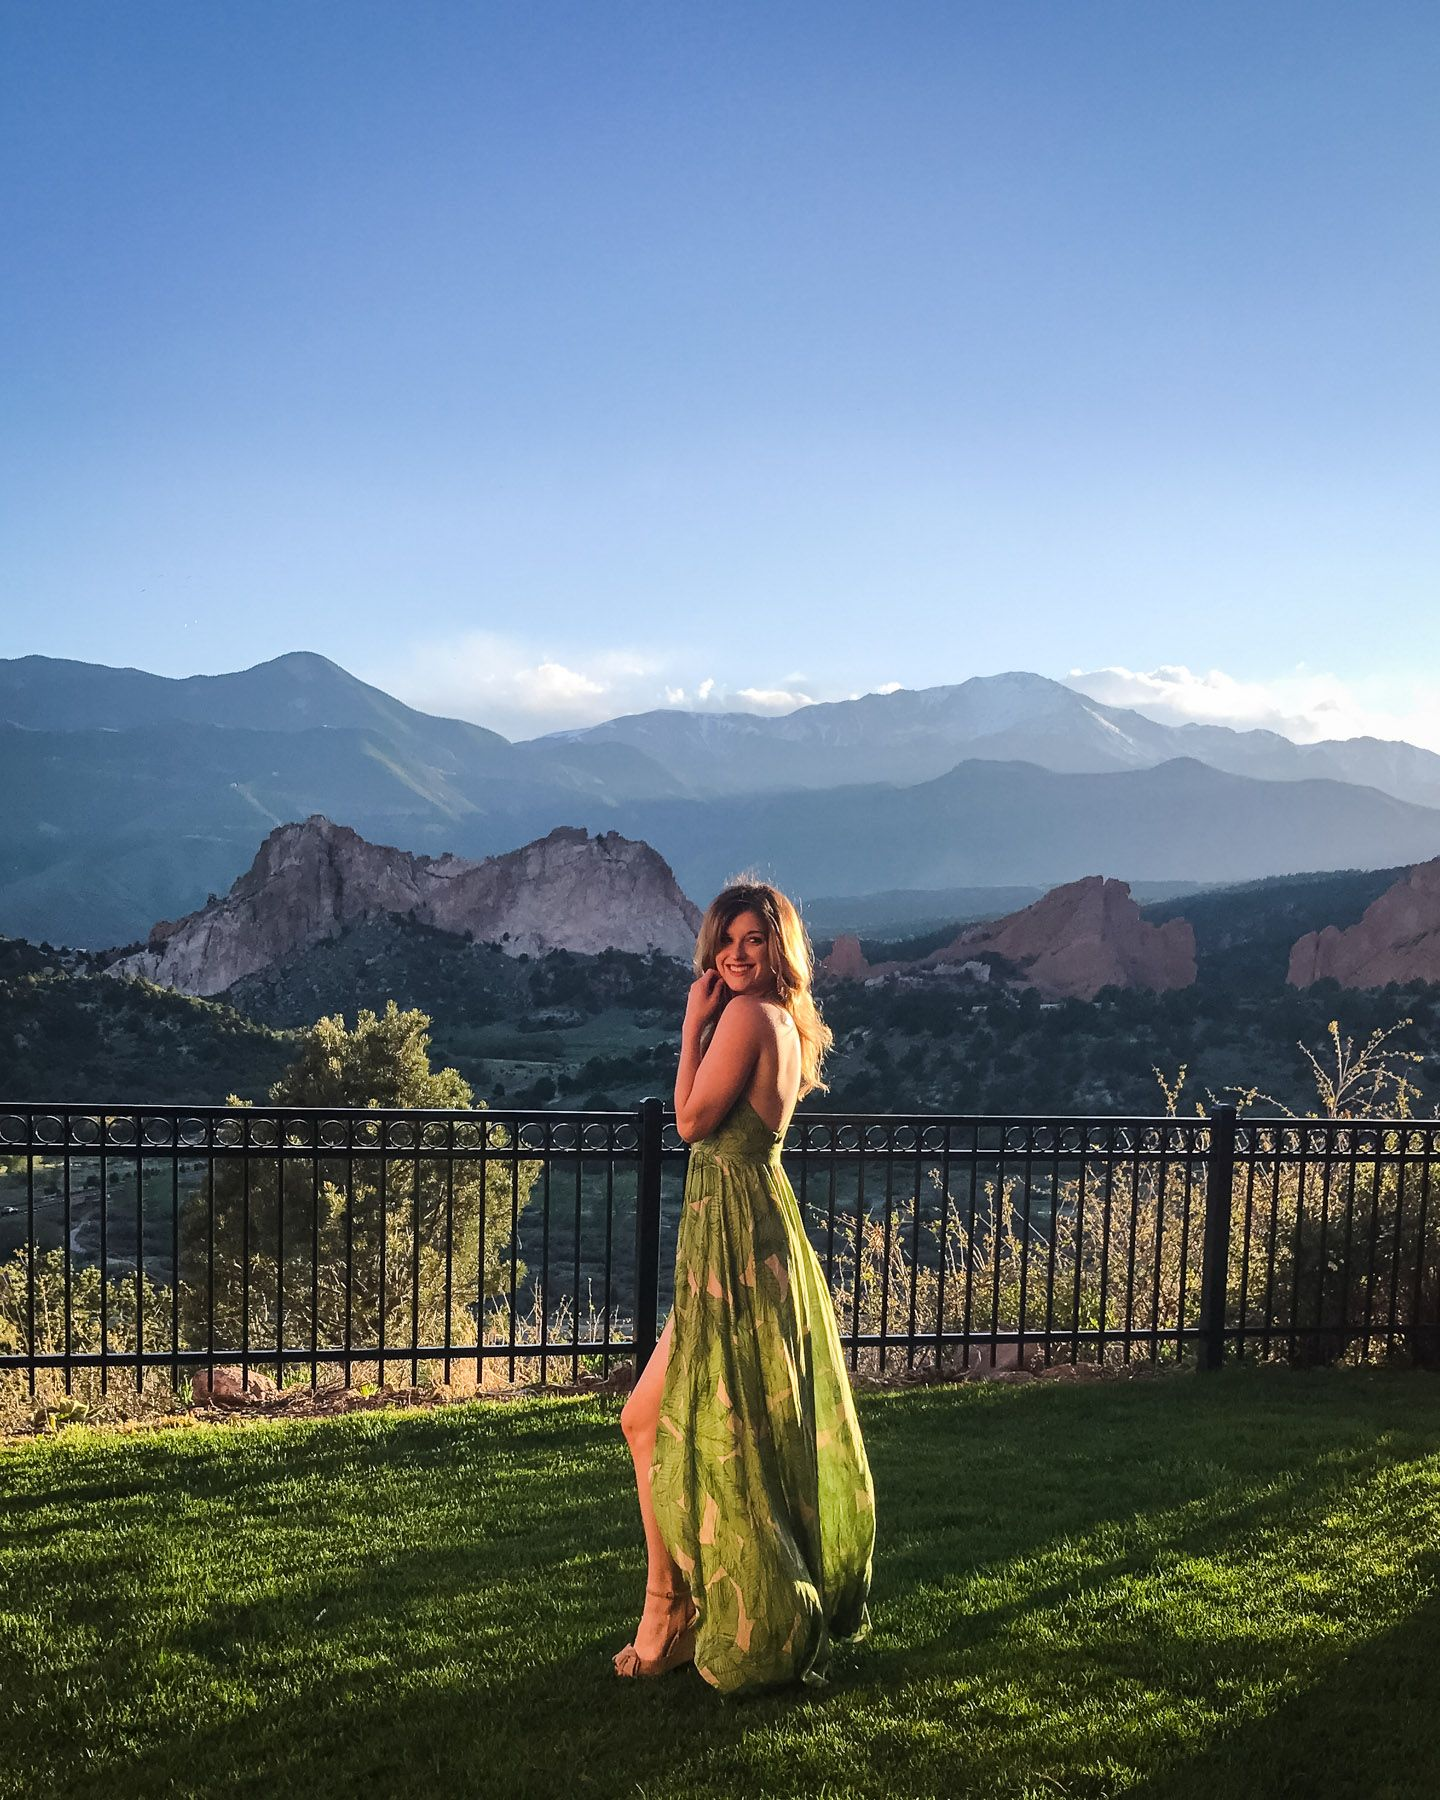 Cheap Wedding Dresses Colorado Springs: Garden Of The Gods Resort Review + Colorado Springs Girls